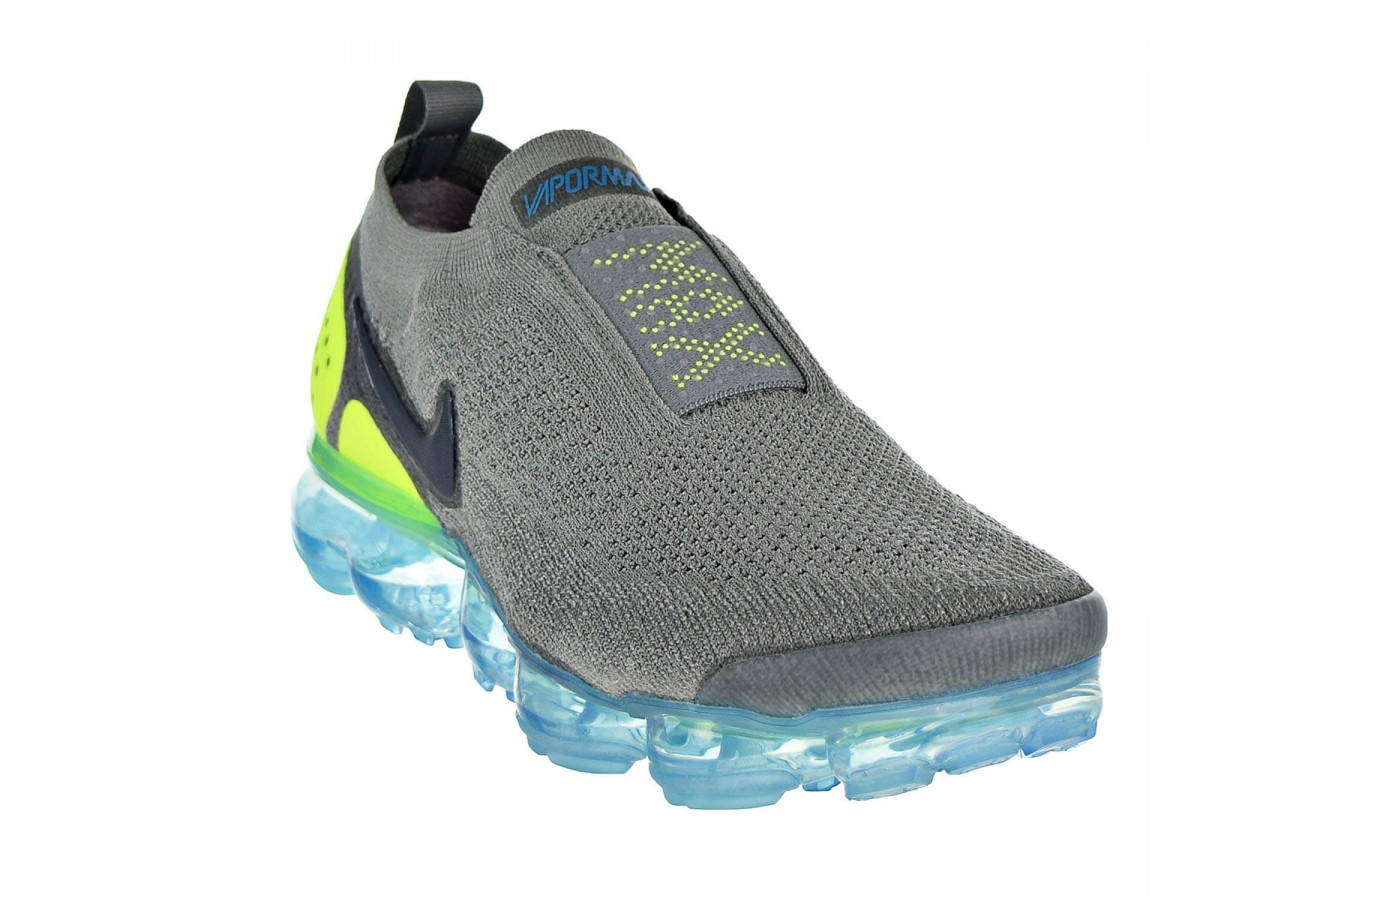 ac1e3c60097c8 Nike Air VaporMax Flyknit Moc 2 - in May 2019